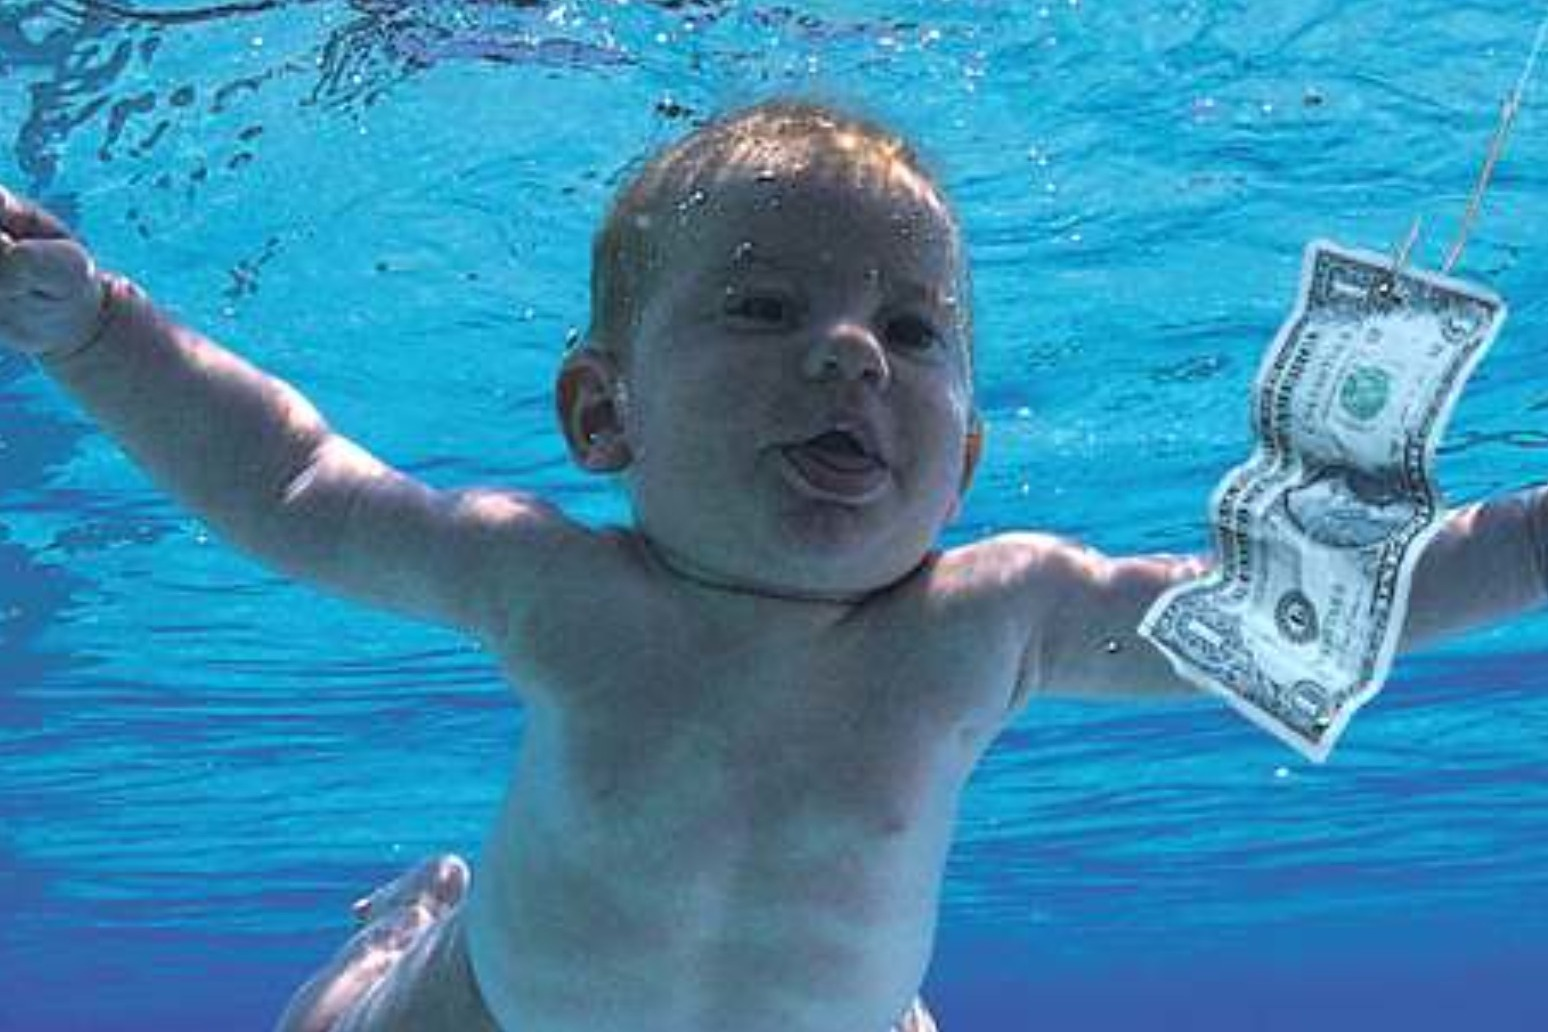 Baby featured on Nirvana's Nevermind album sues band for 'sexual exploitation'